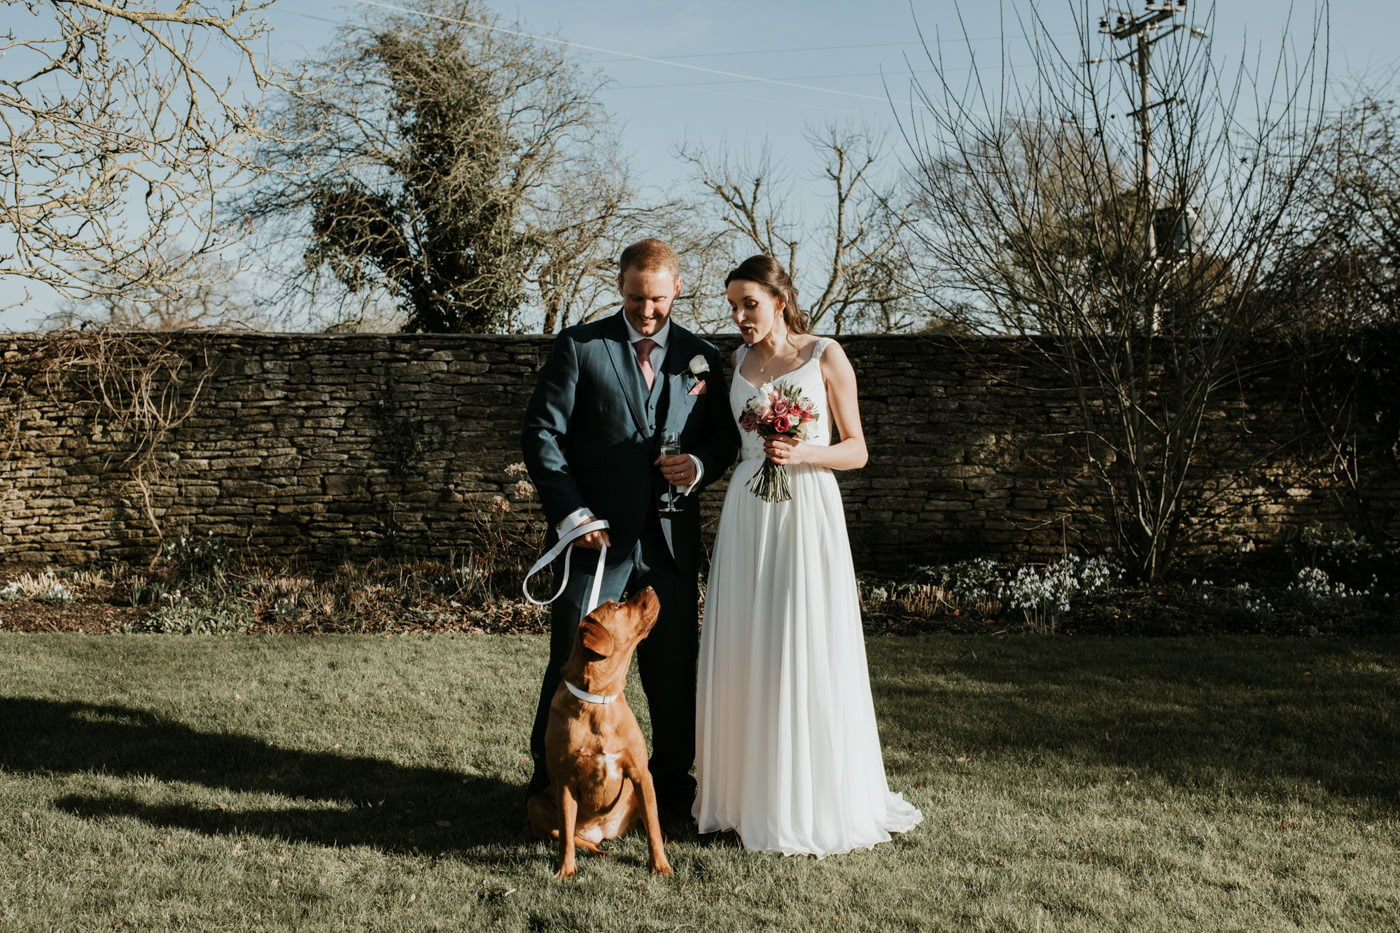 Ruth and Ben, Winkworth Farm, Wiltshire 90